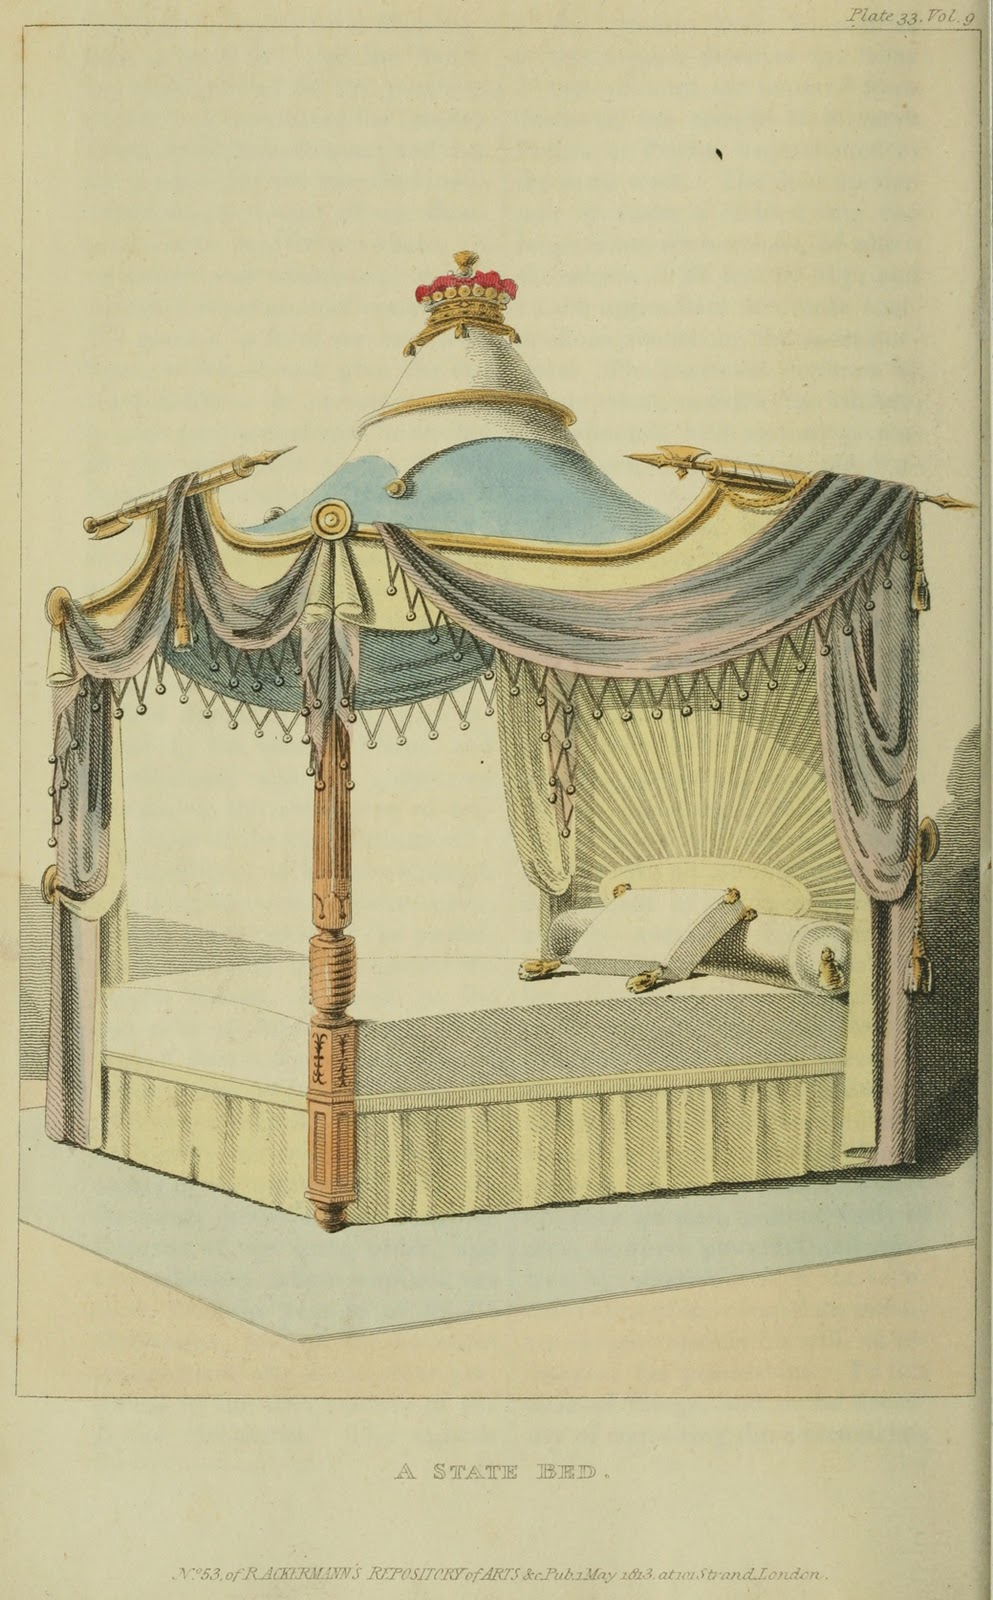 Four poster state bed. Plate 33. 1813.